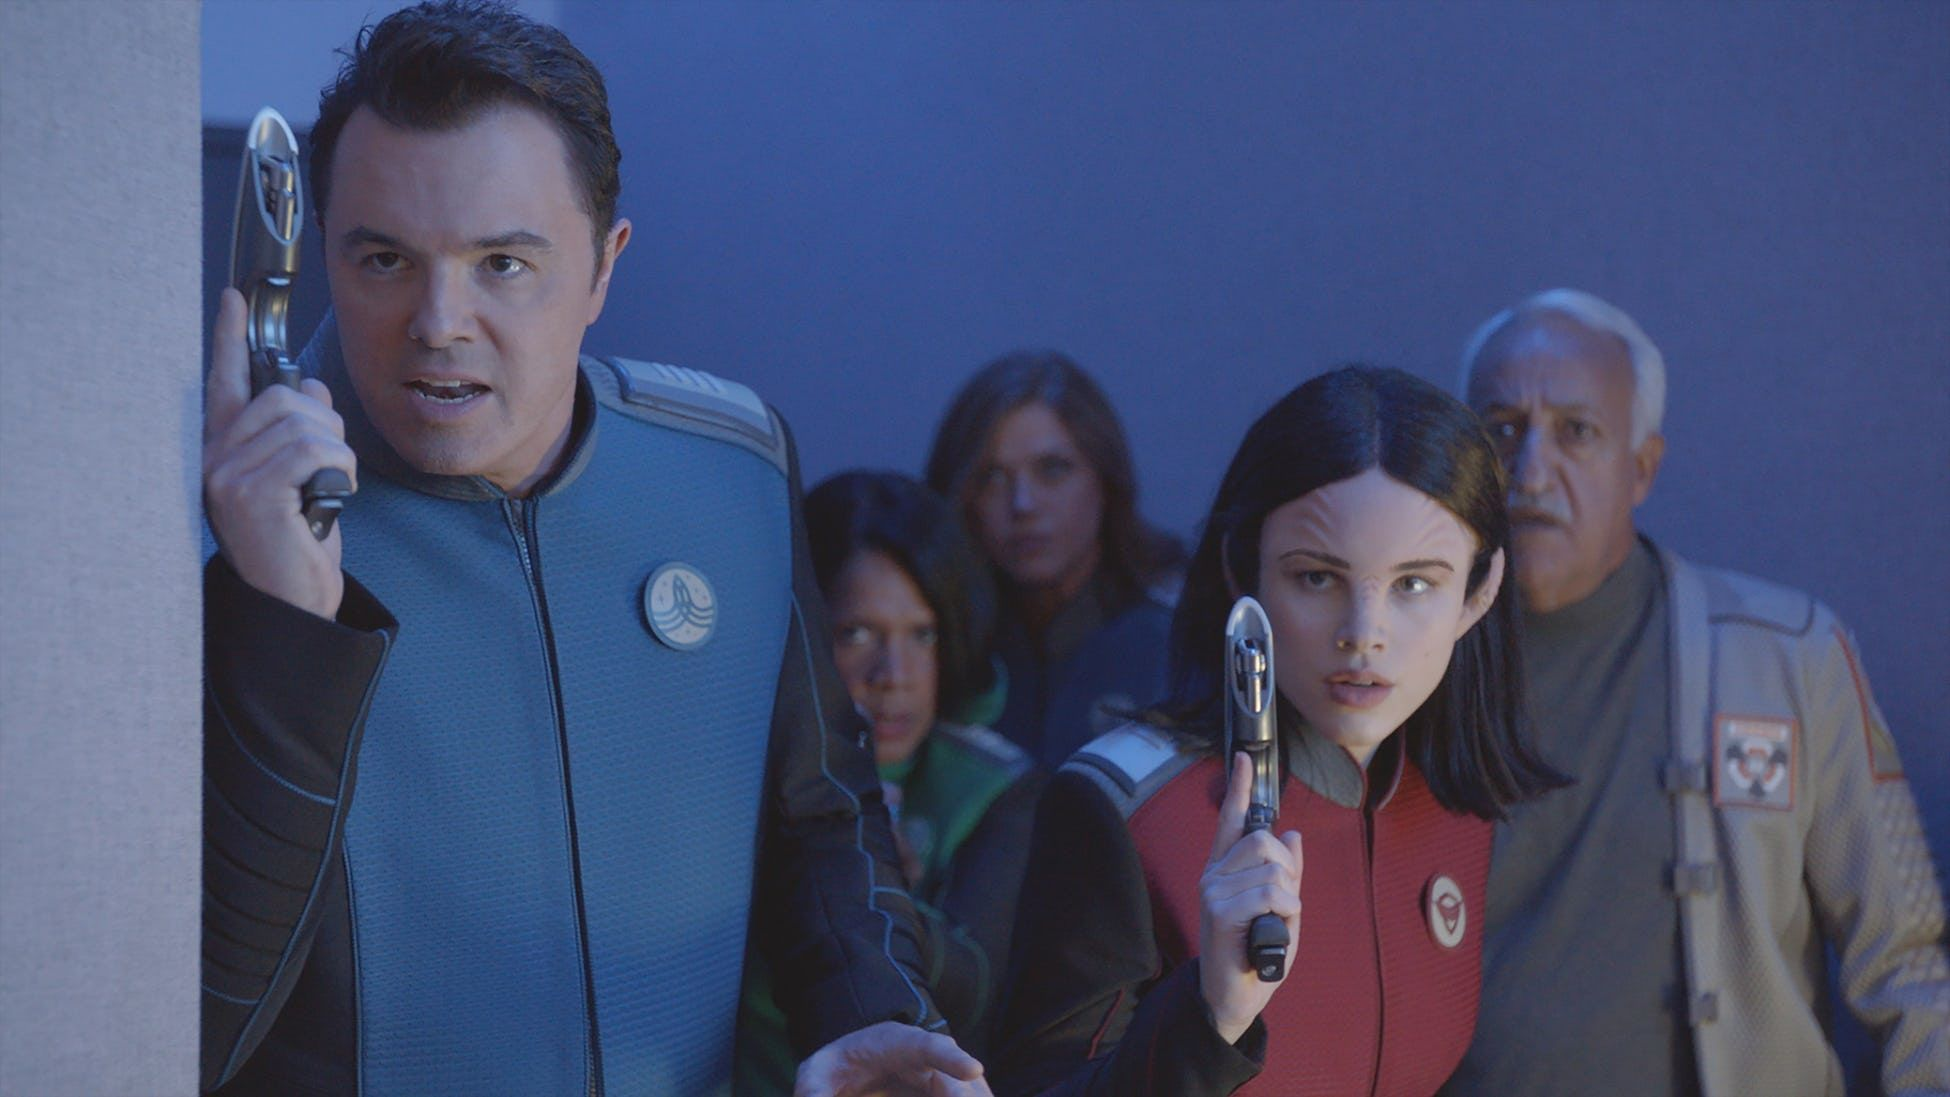 Pin by Daniel Appleton on The Orville Impressed Already